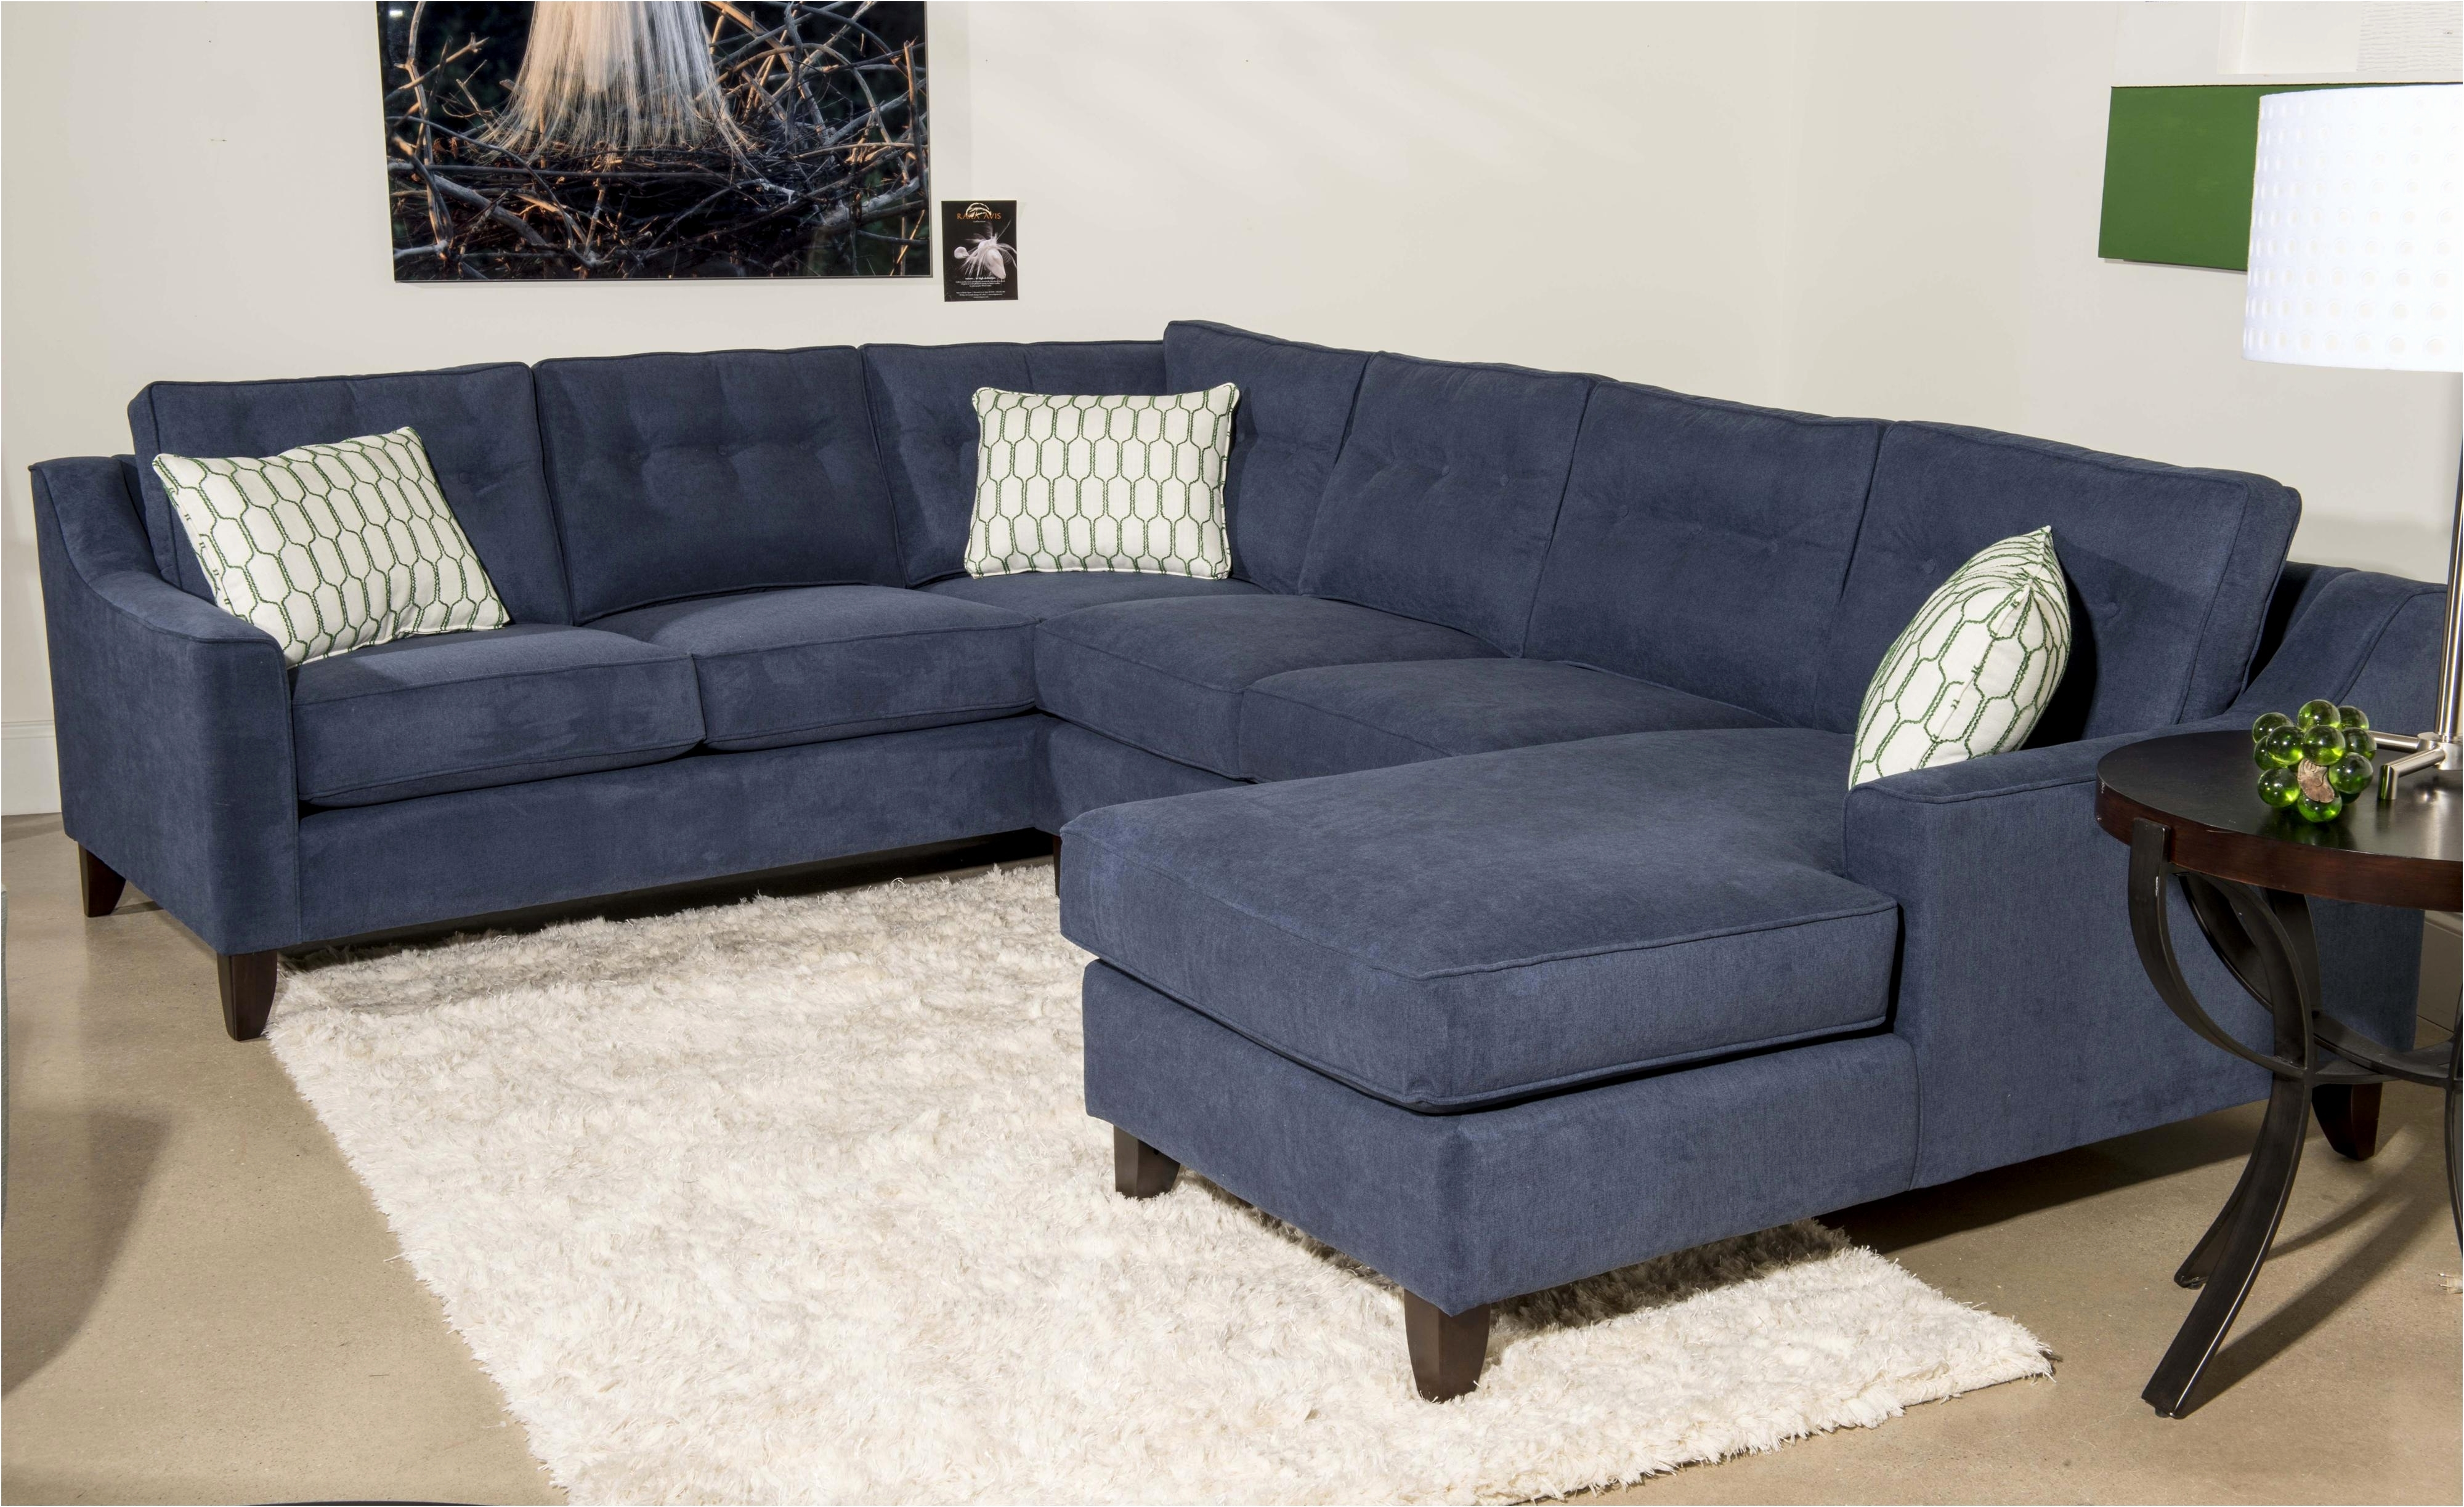 Blue Sectional Sofa Unique Light Leather Within Navy Plan 19 For Blue Sectional Sofas (View 8 of 10)